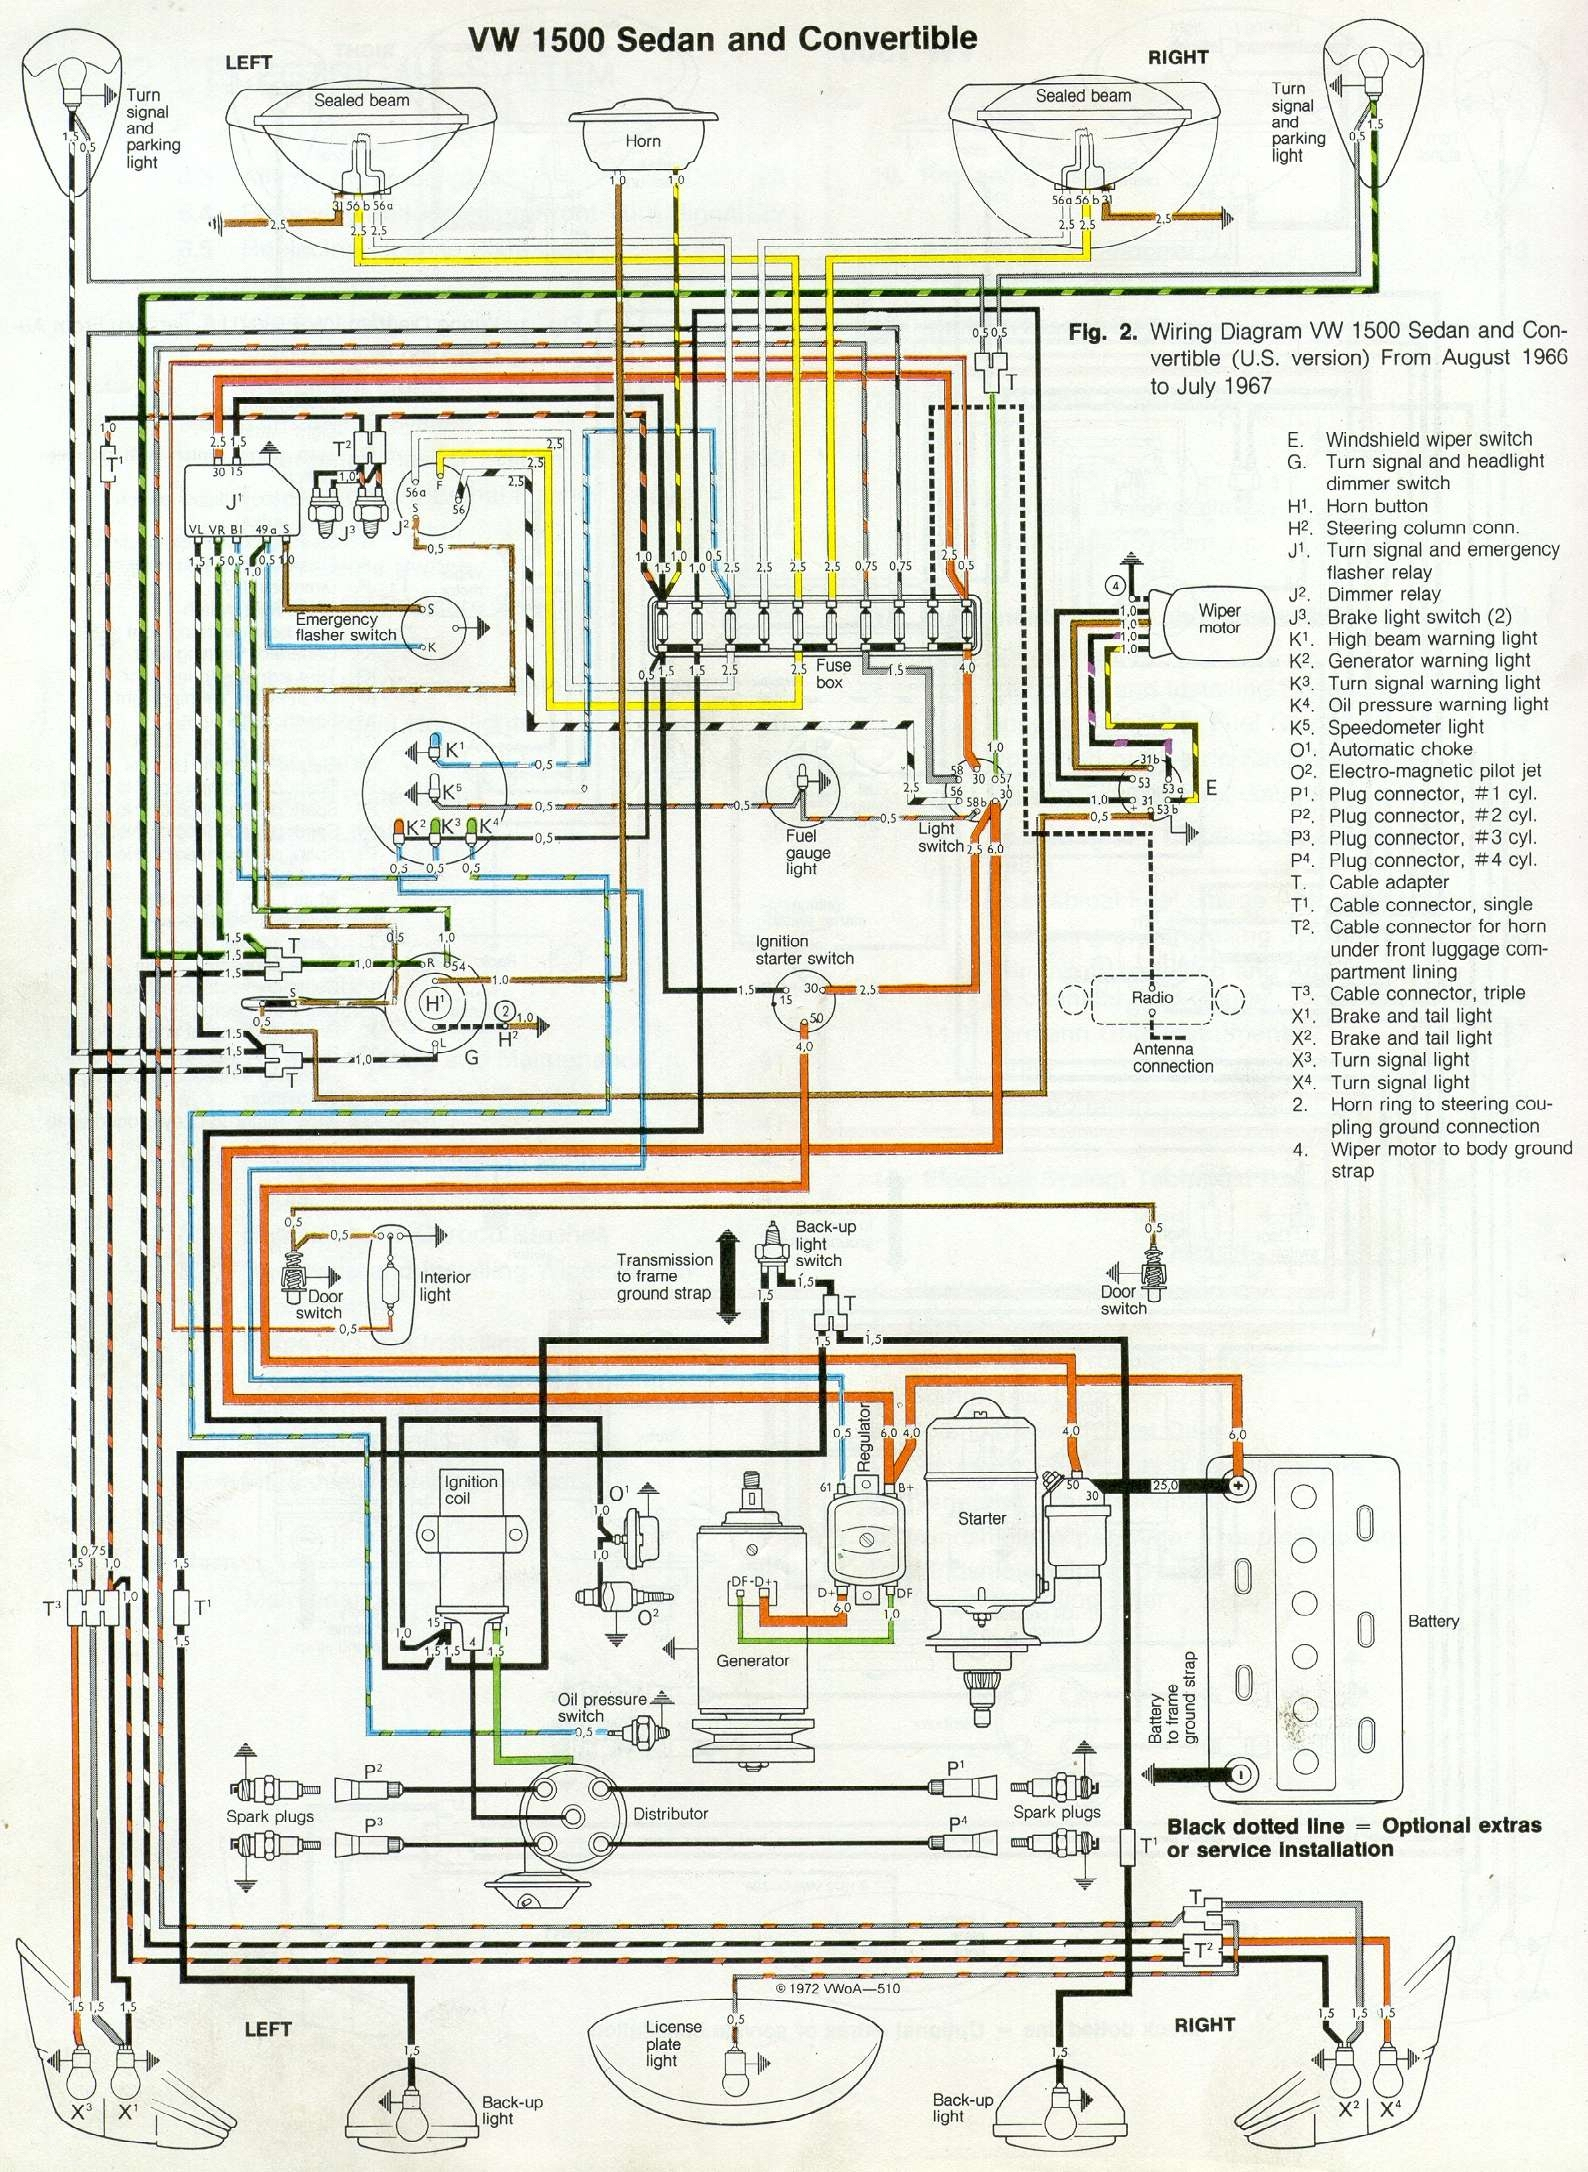 75 Vw Bus Wiring Diagrams Layout 1981 Super Beetle Diagram 67 U2022 Rh Laurafinlay Co Uk 1974 Alternator 1975